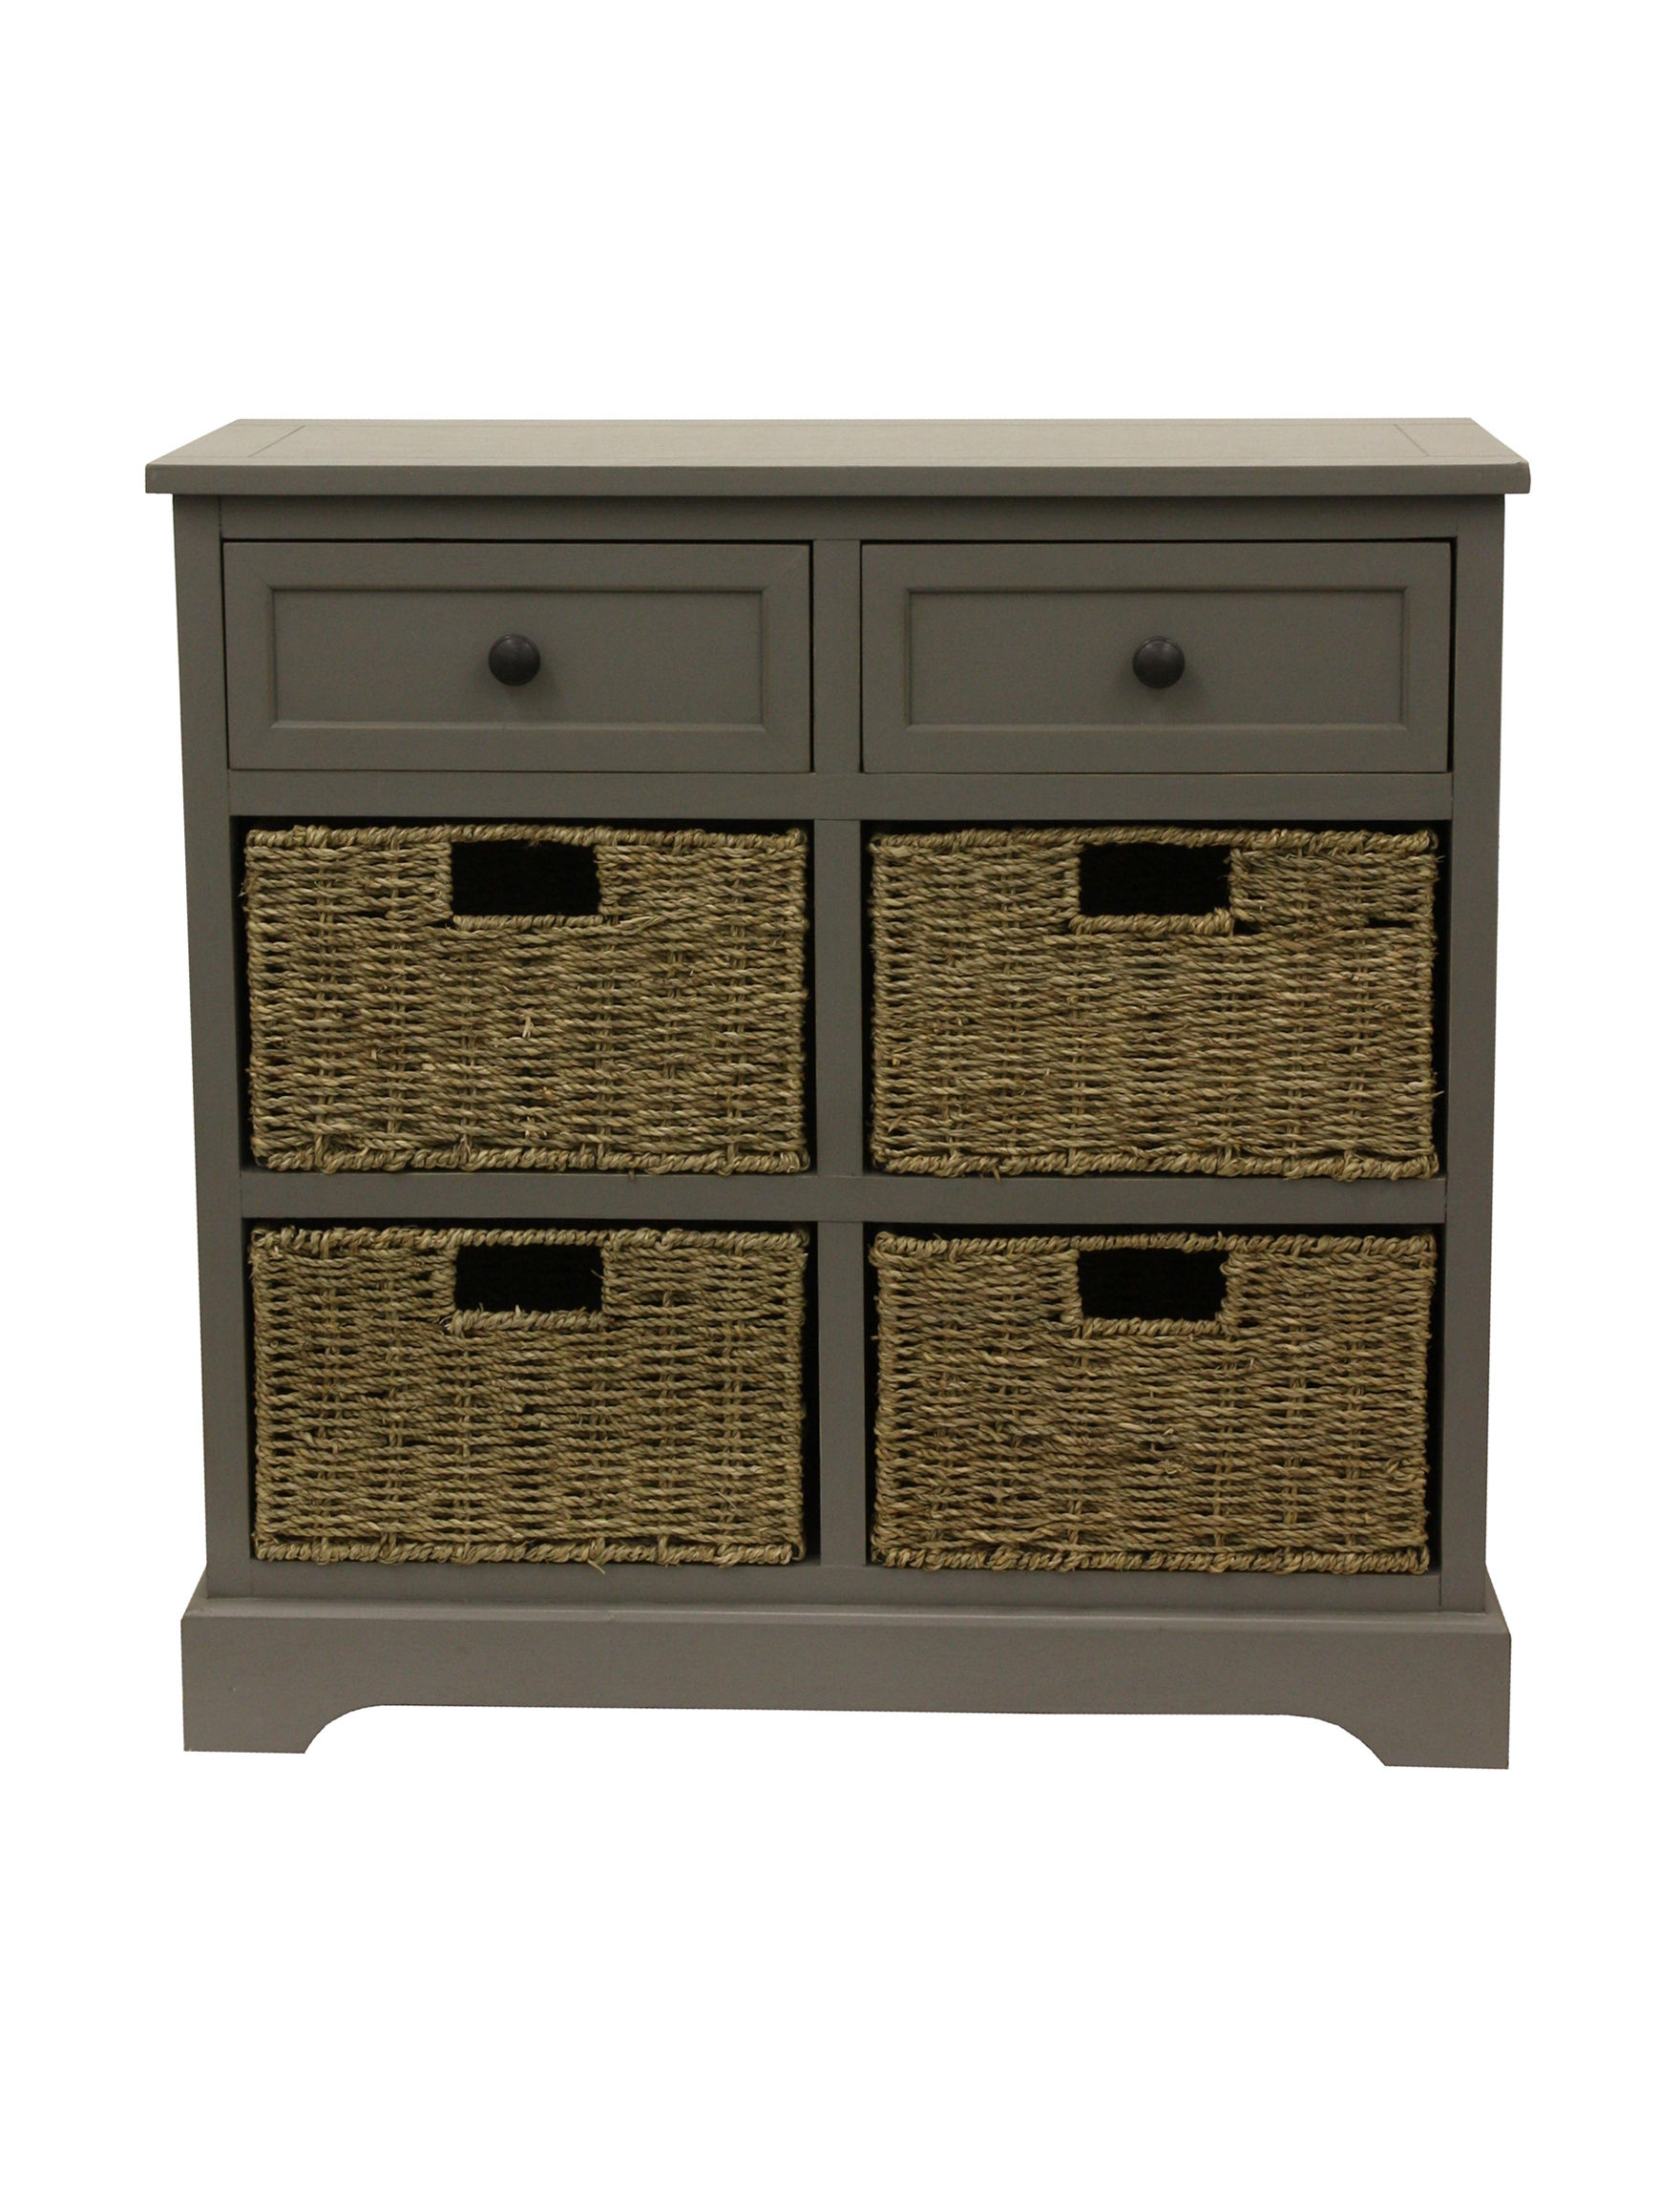 Decor Therapy Grey Dressers & Chests Bathroom Furniture Bedroom Furniture Home Office Furniture Living Room Furniture